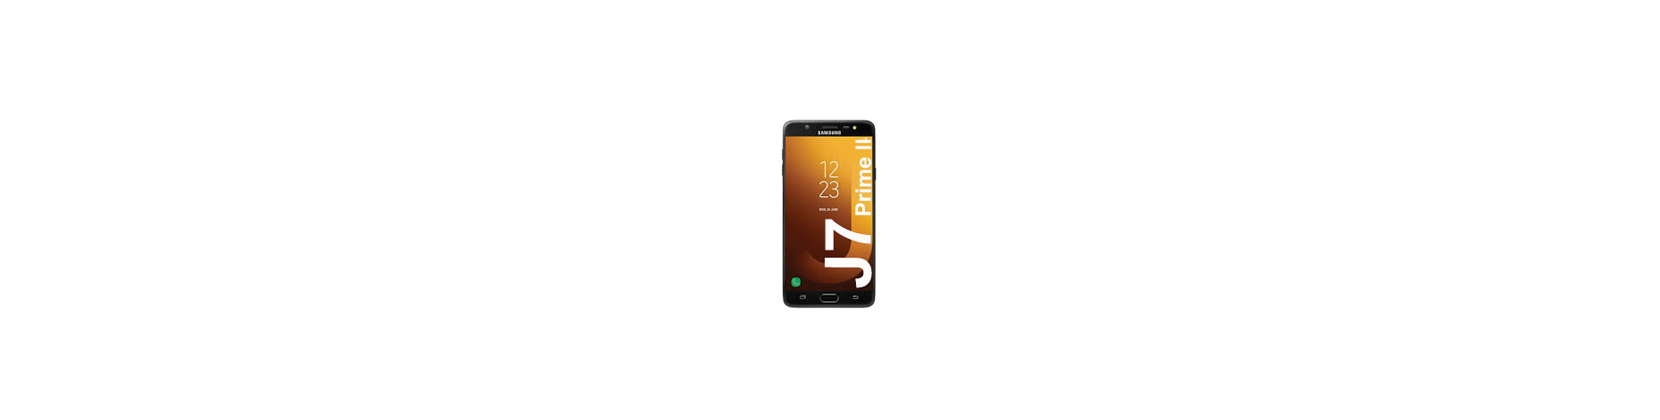 Spare parts for Galaxy J7 Prime 2